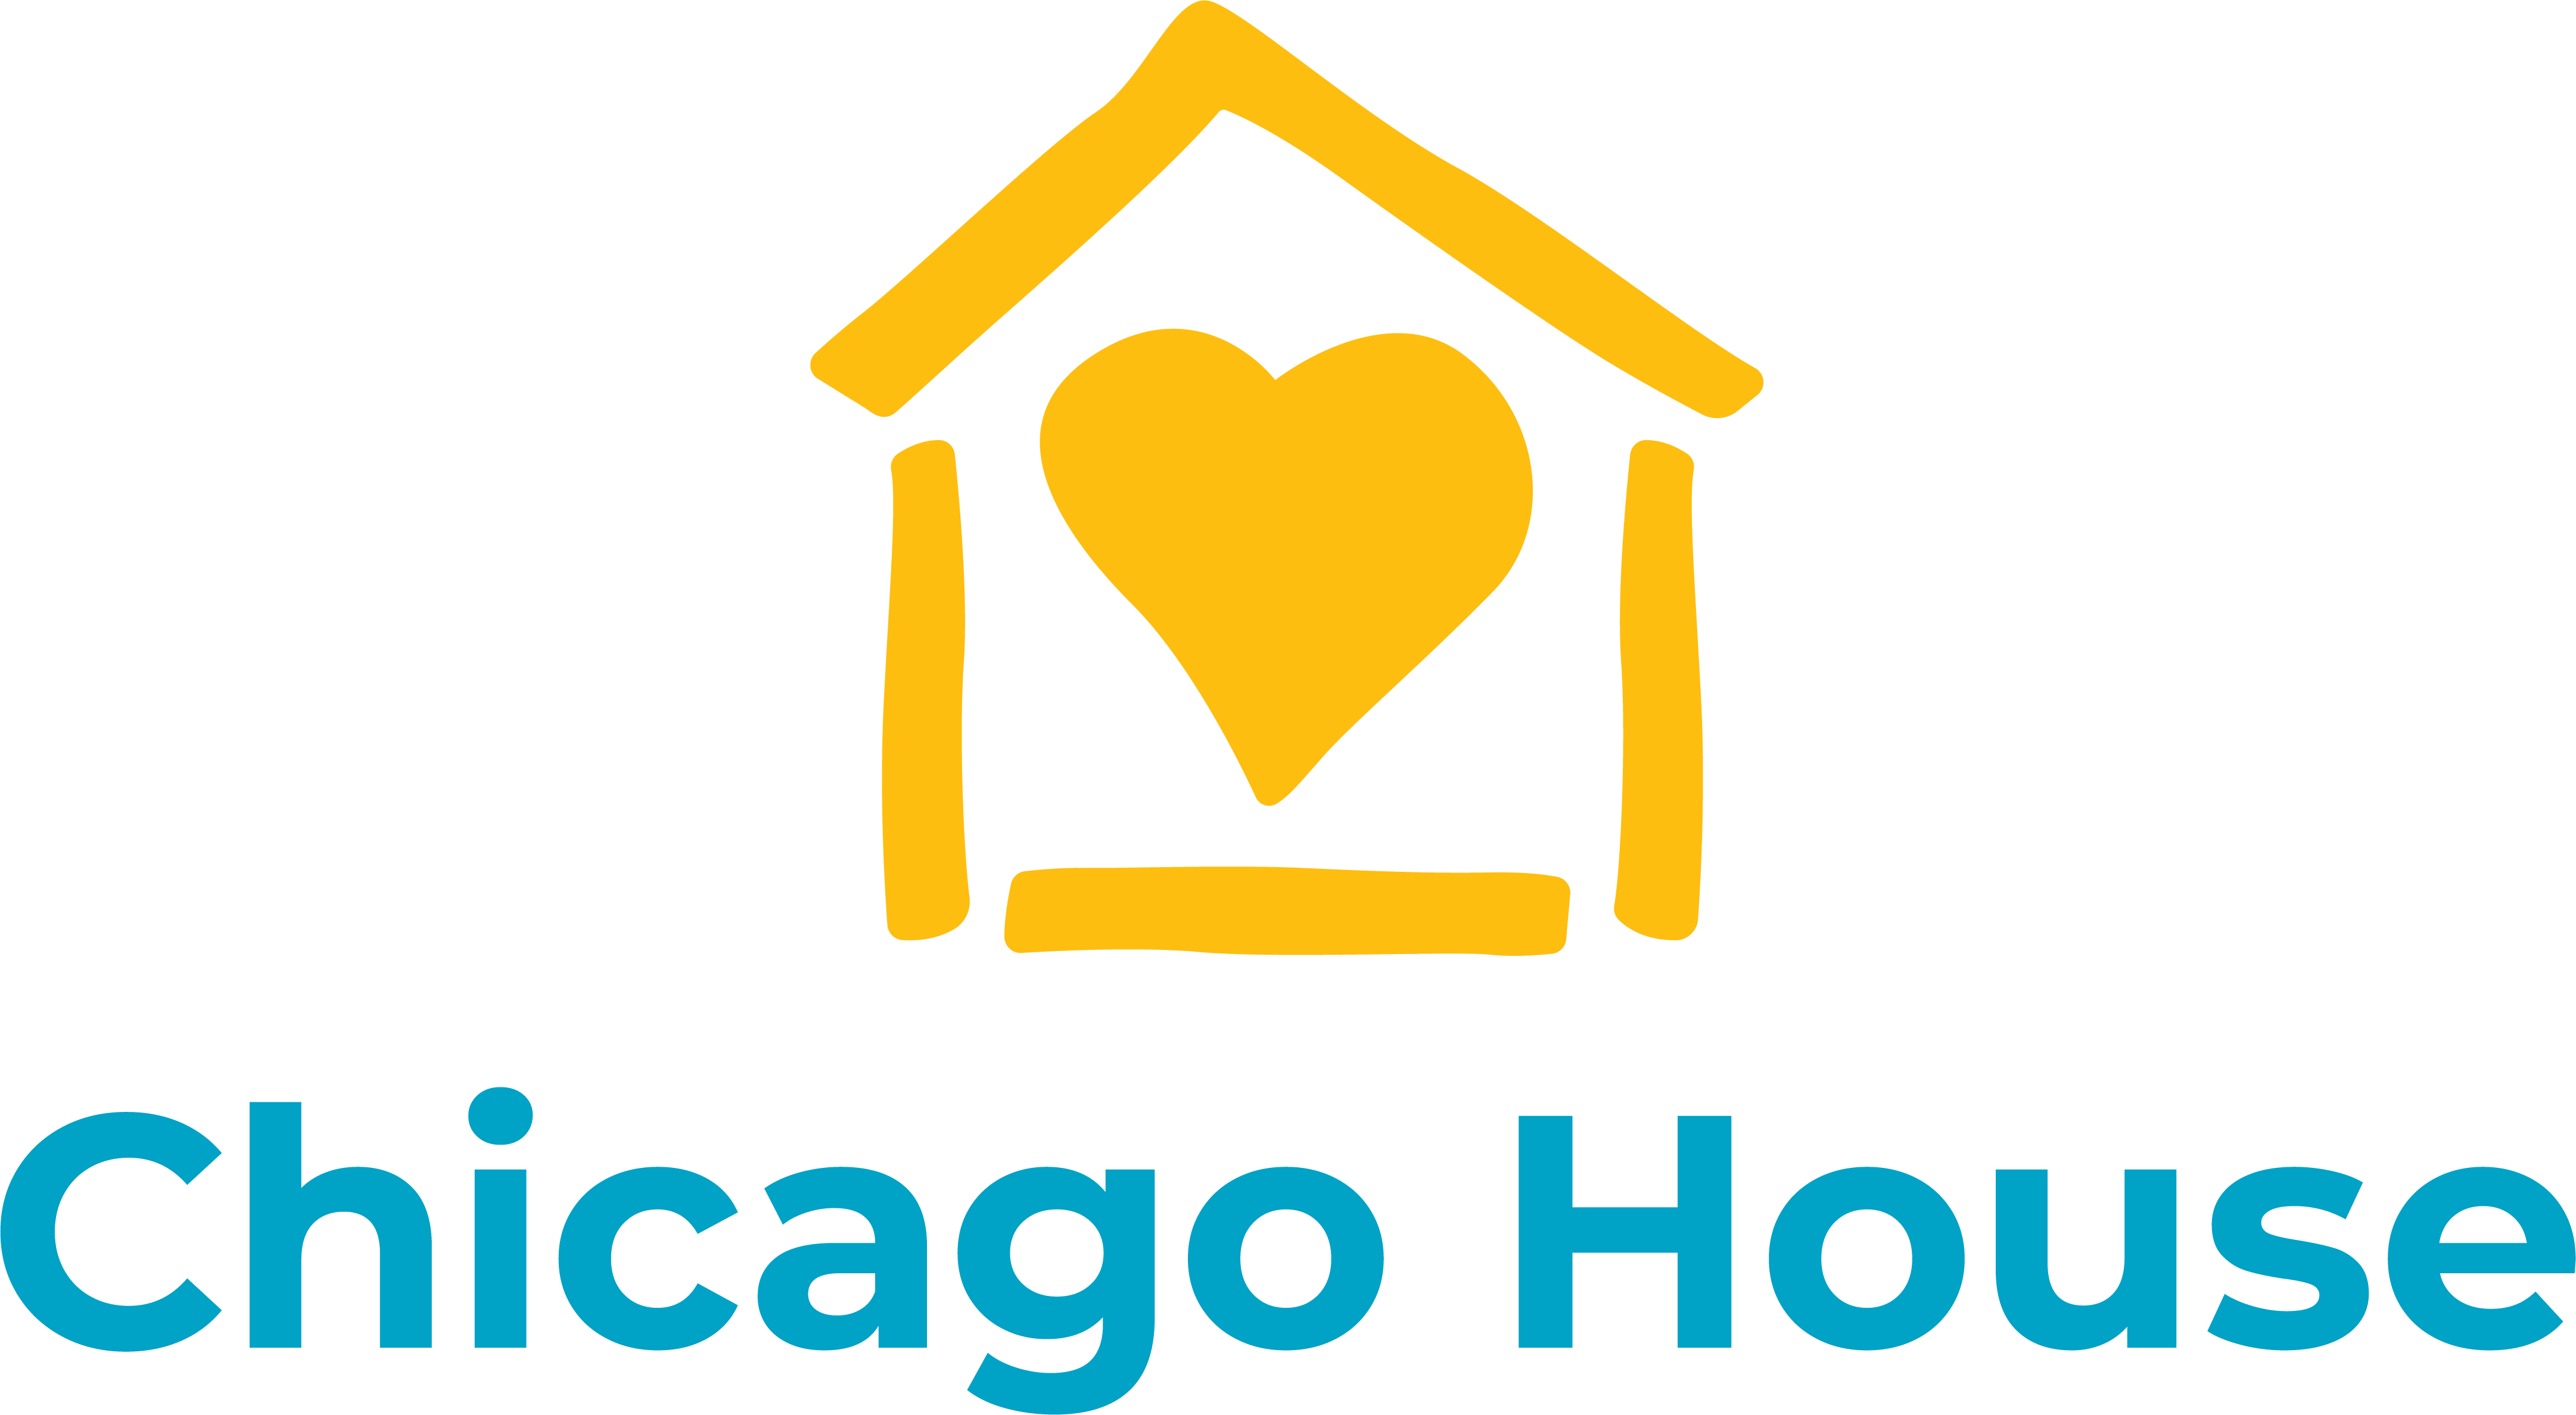 Chicago House's logo